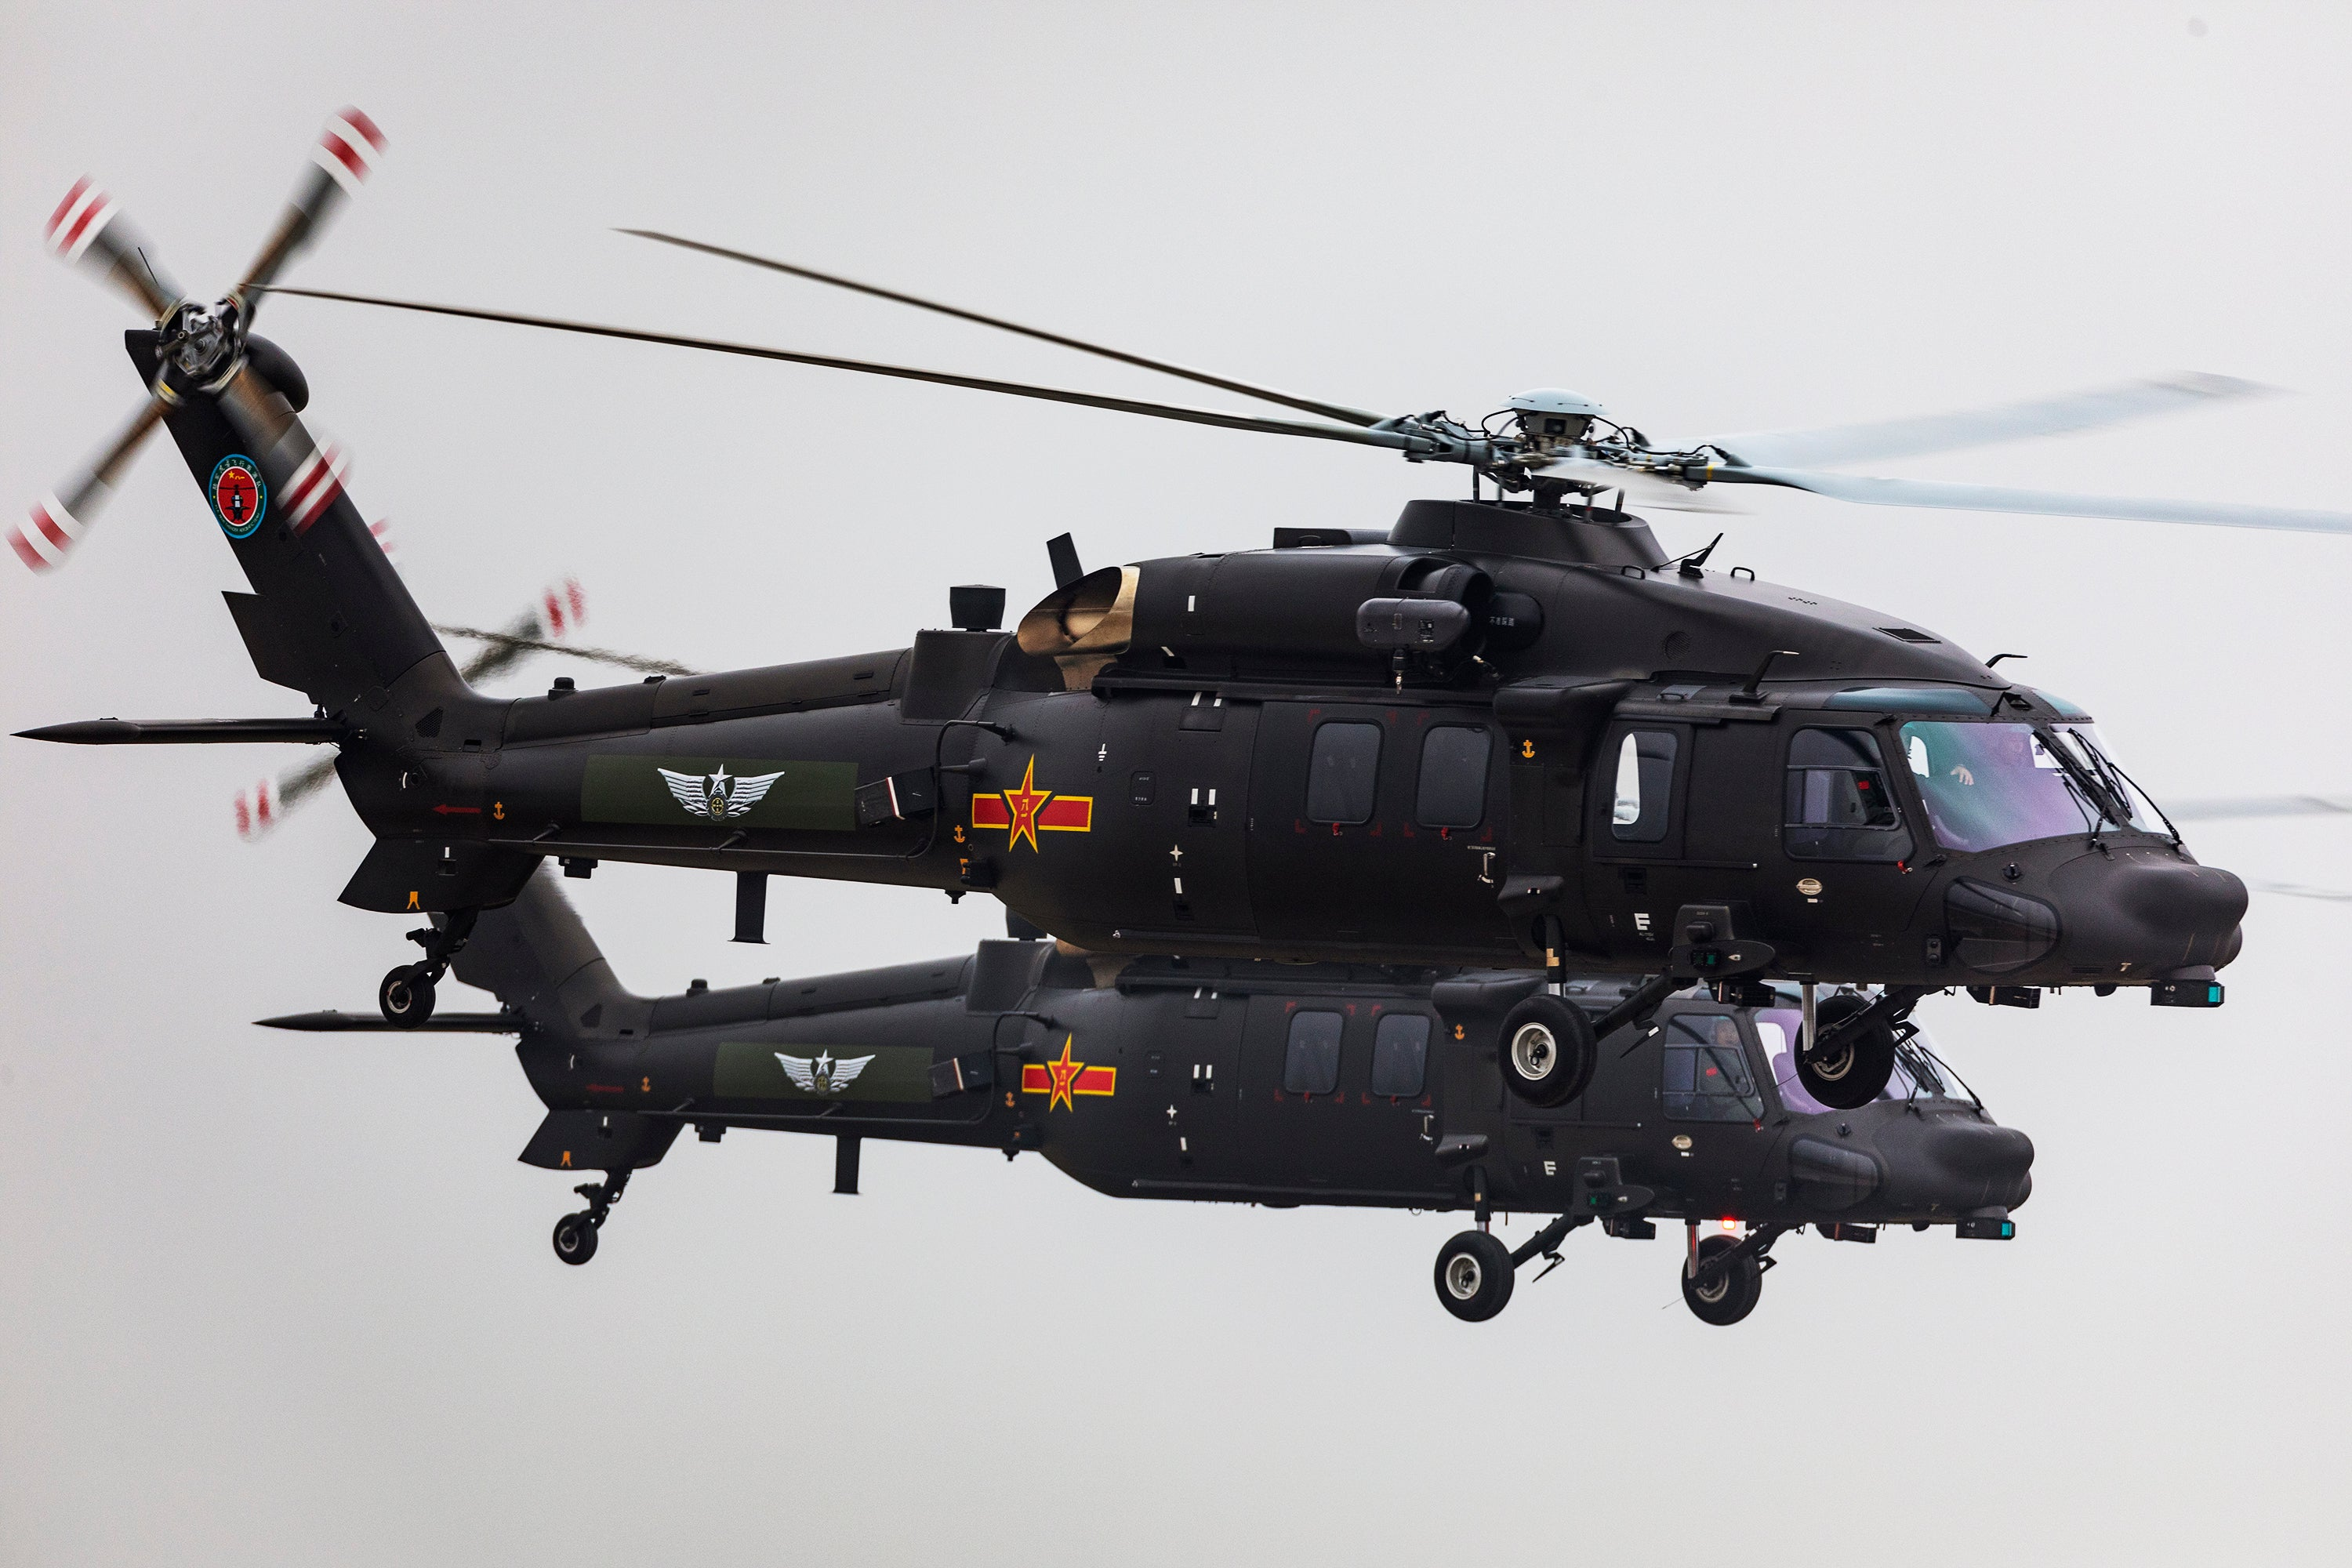 China's Z-20 Helicopter Looks Awfully Familiar